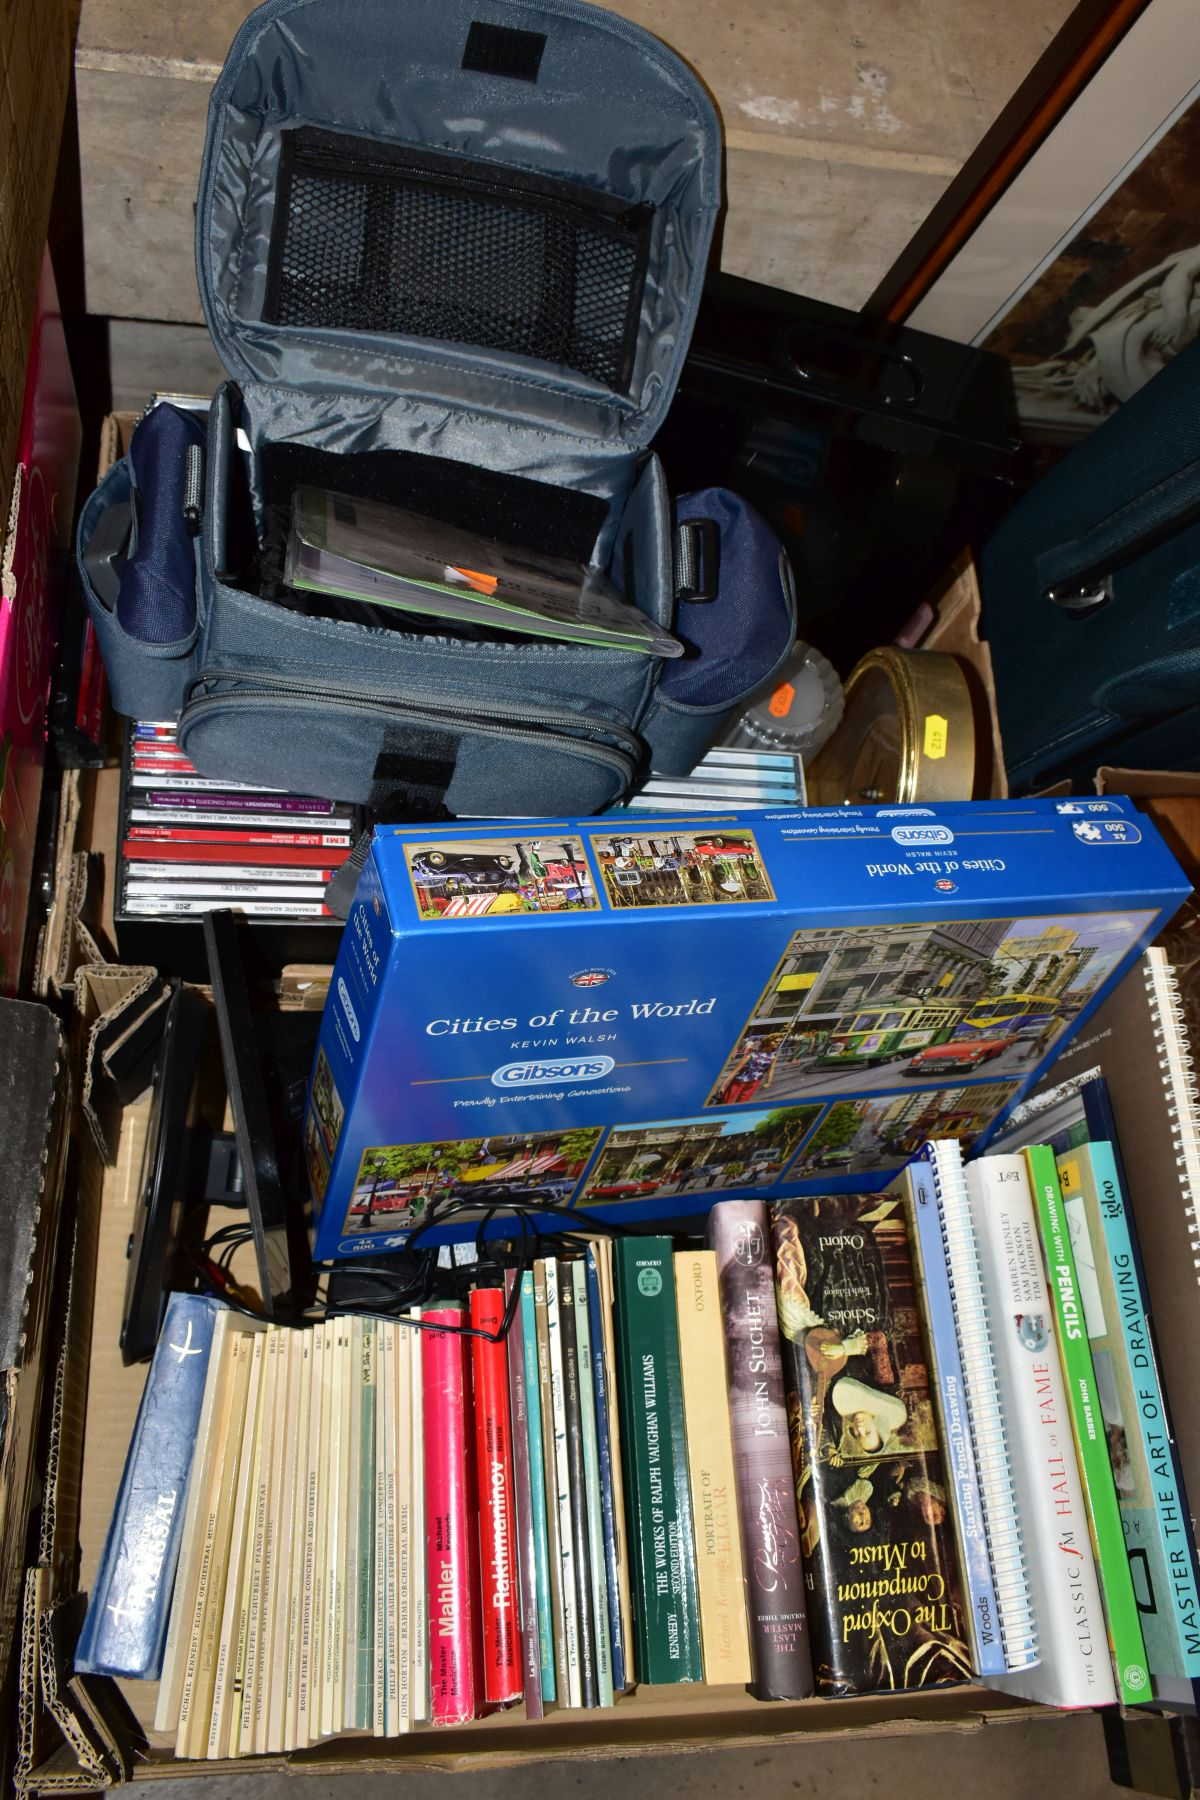 THREE BOXES AND LOOSE CERAMICS, GLASS, BOOKS, CD'S, A SUITCASE, ETC, including Royal Doulton Juno - Image 3 of 10